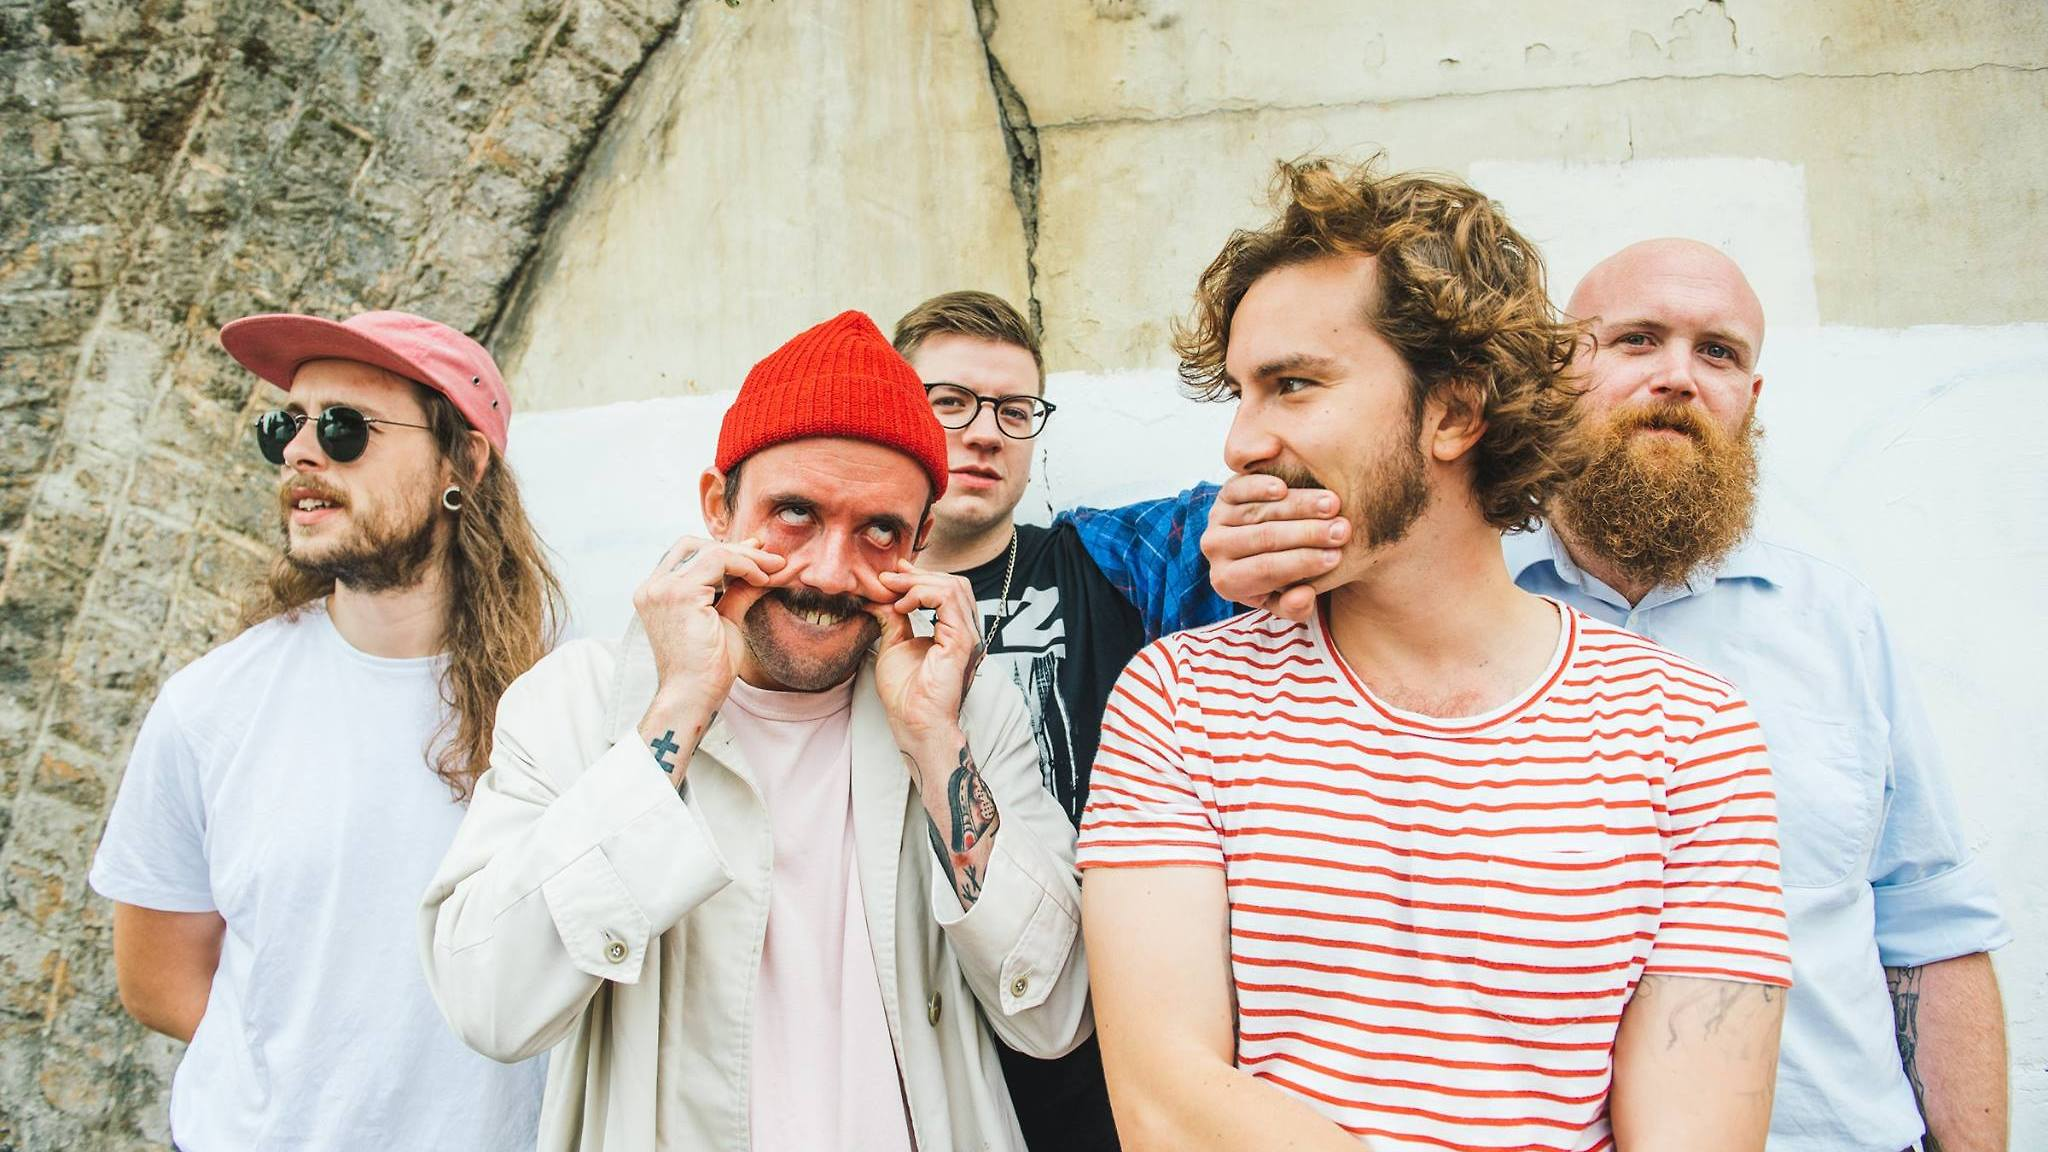 IDLES set for Dublin show at the Iveagh Gardens